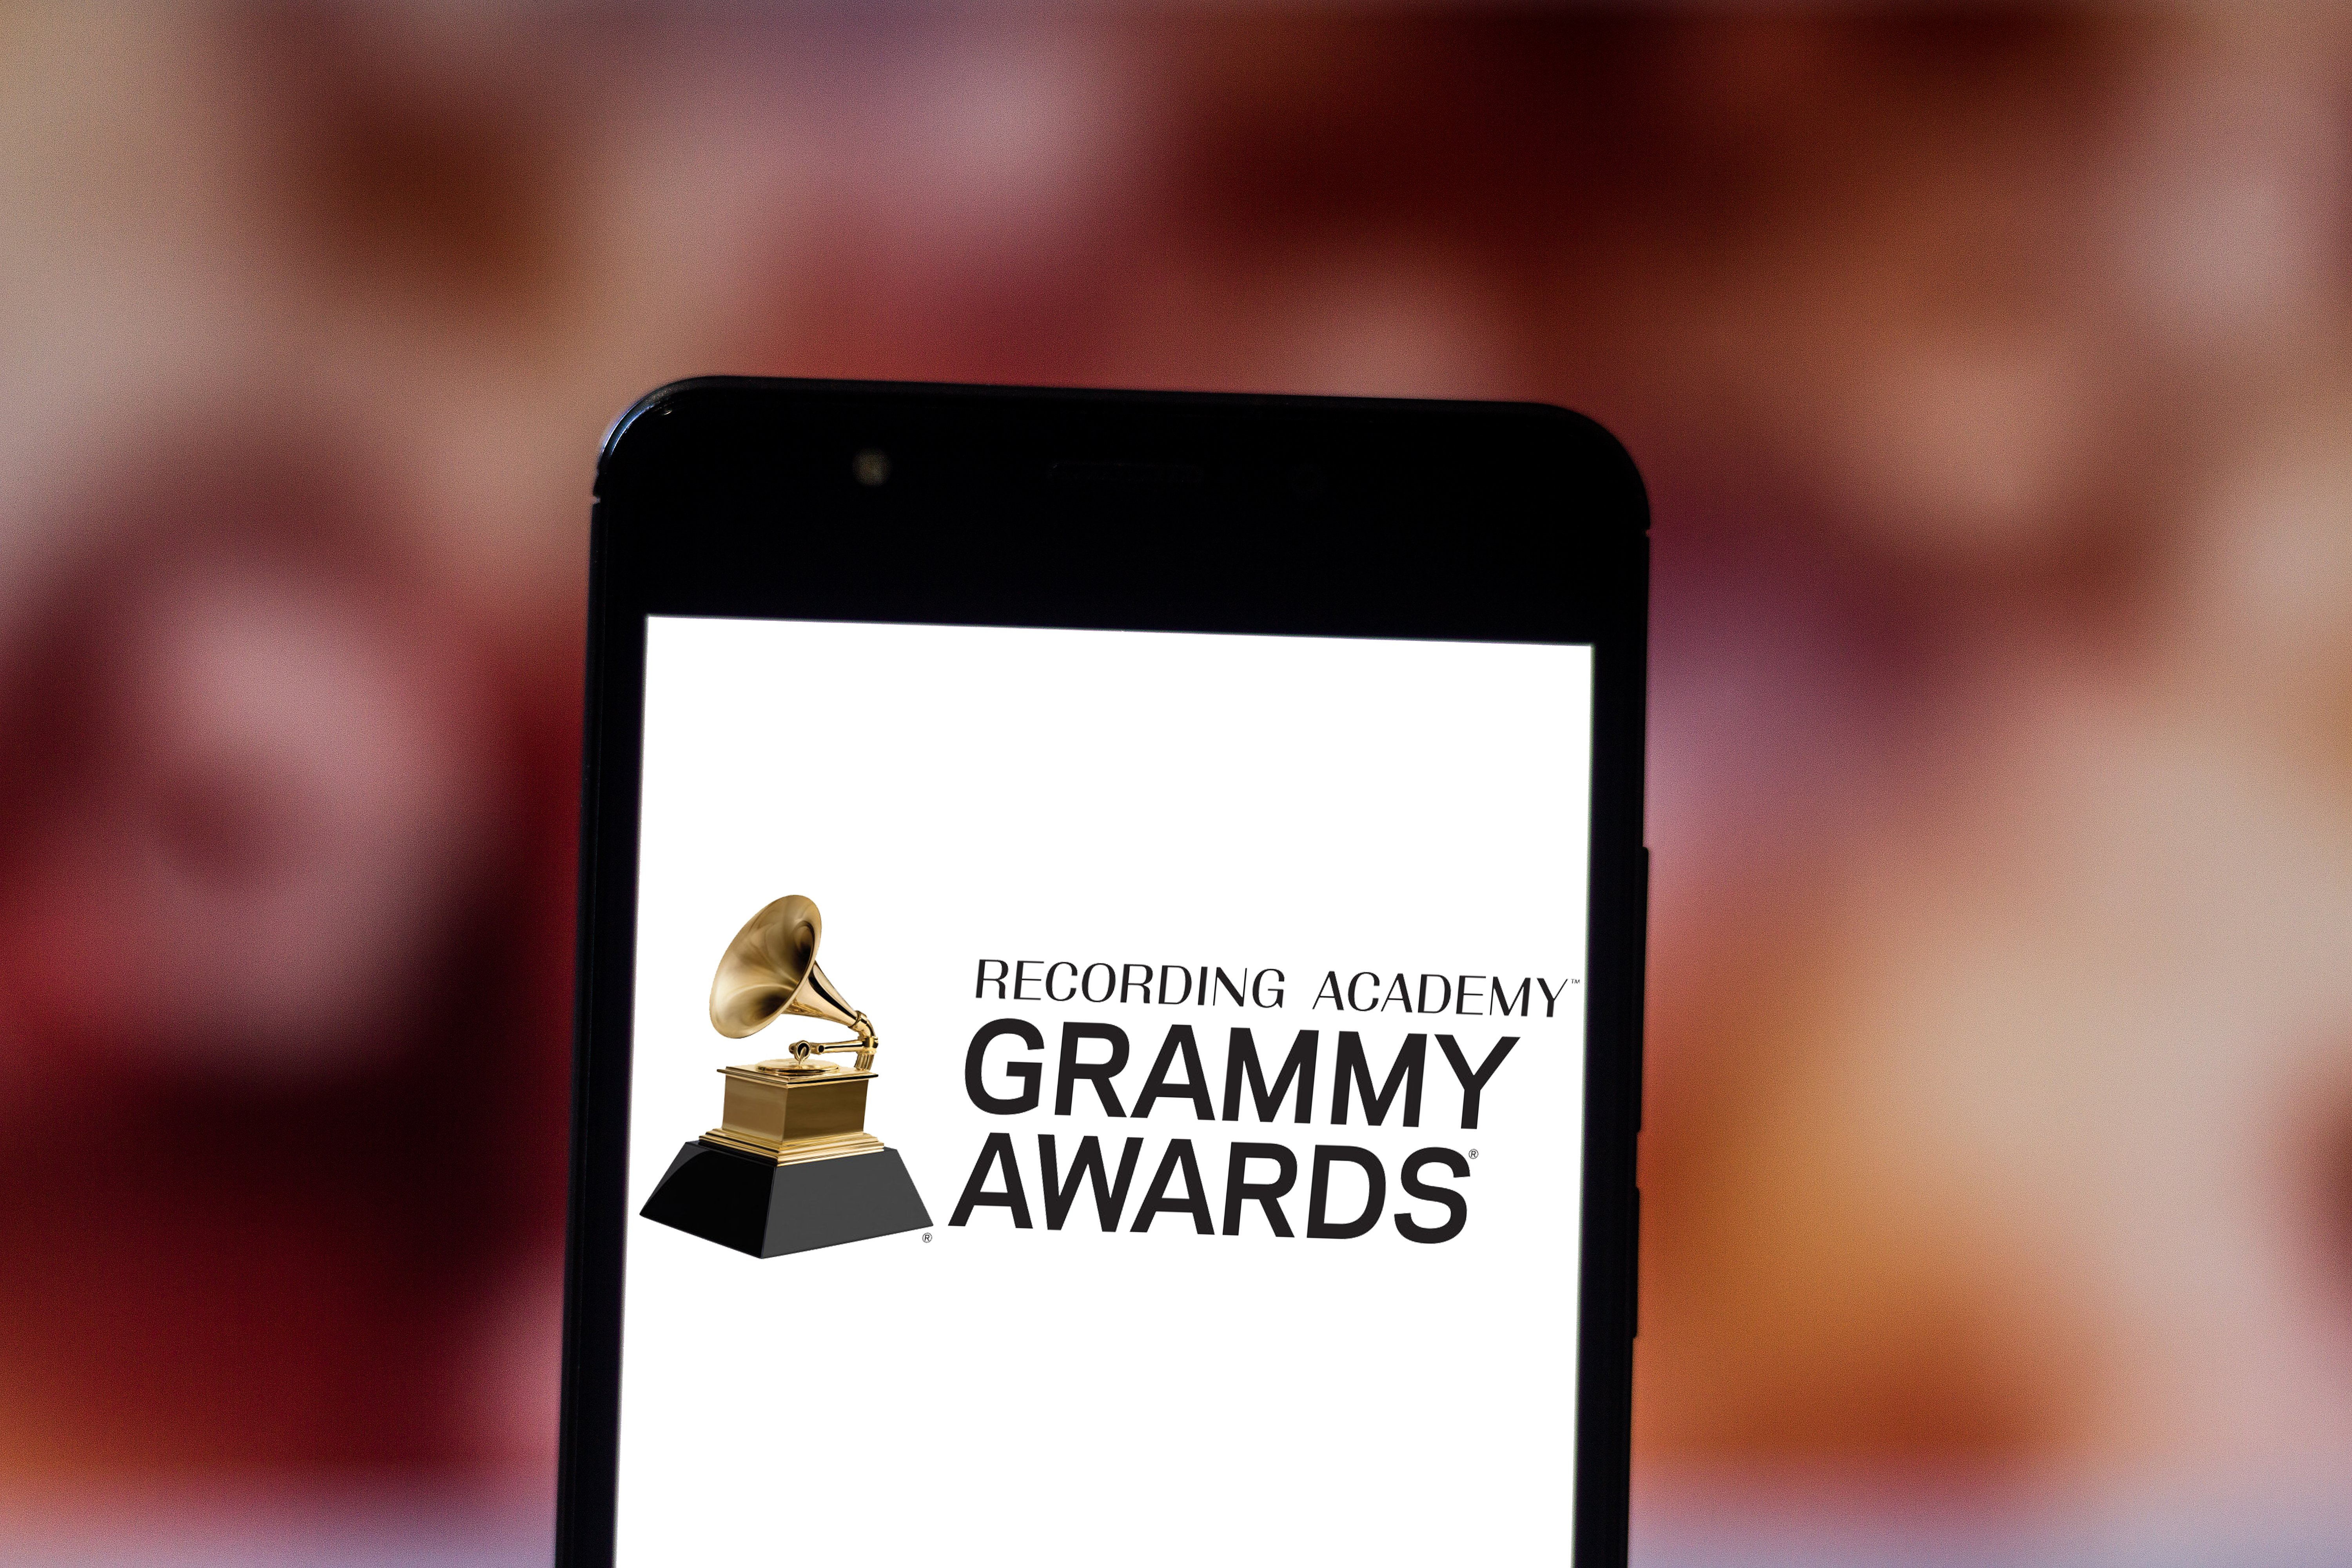 The Grammy Awards logo is displayed on a smartphone in Brazil, June 19, 2019   Photo: Shutterstock